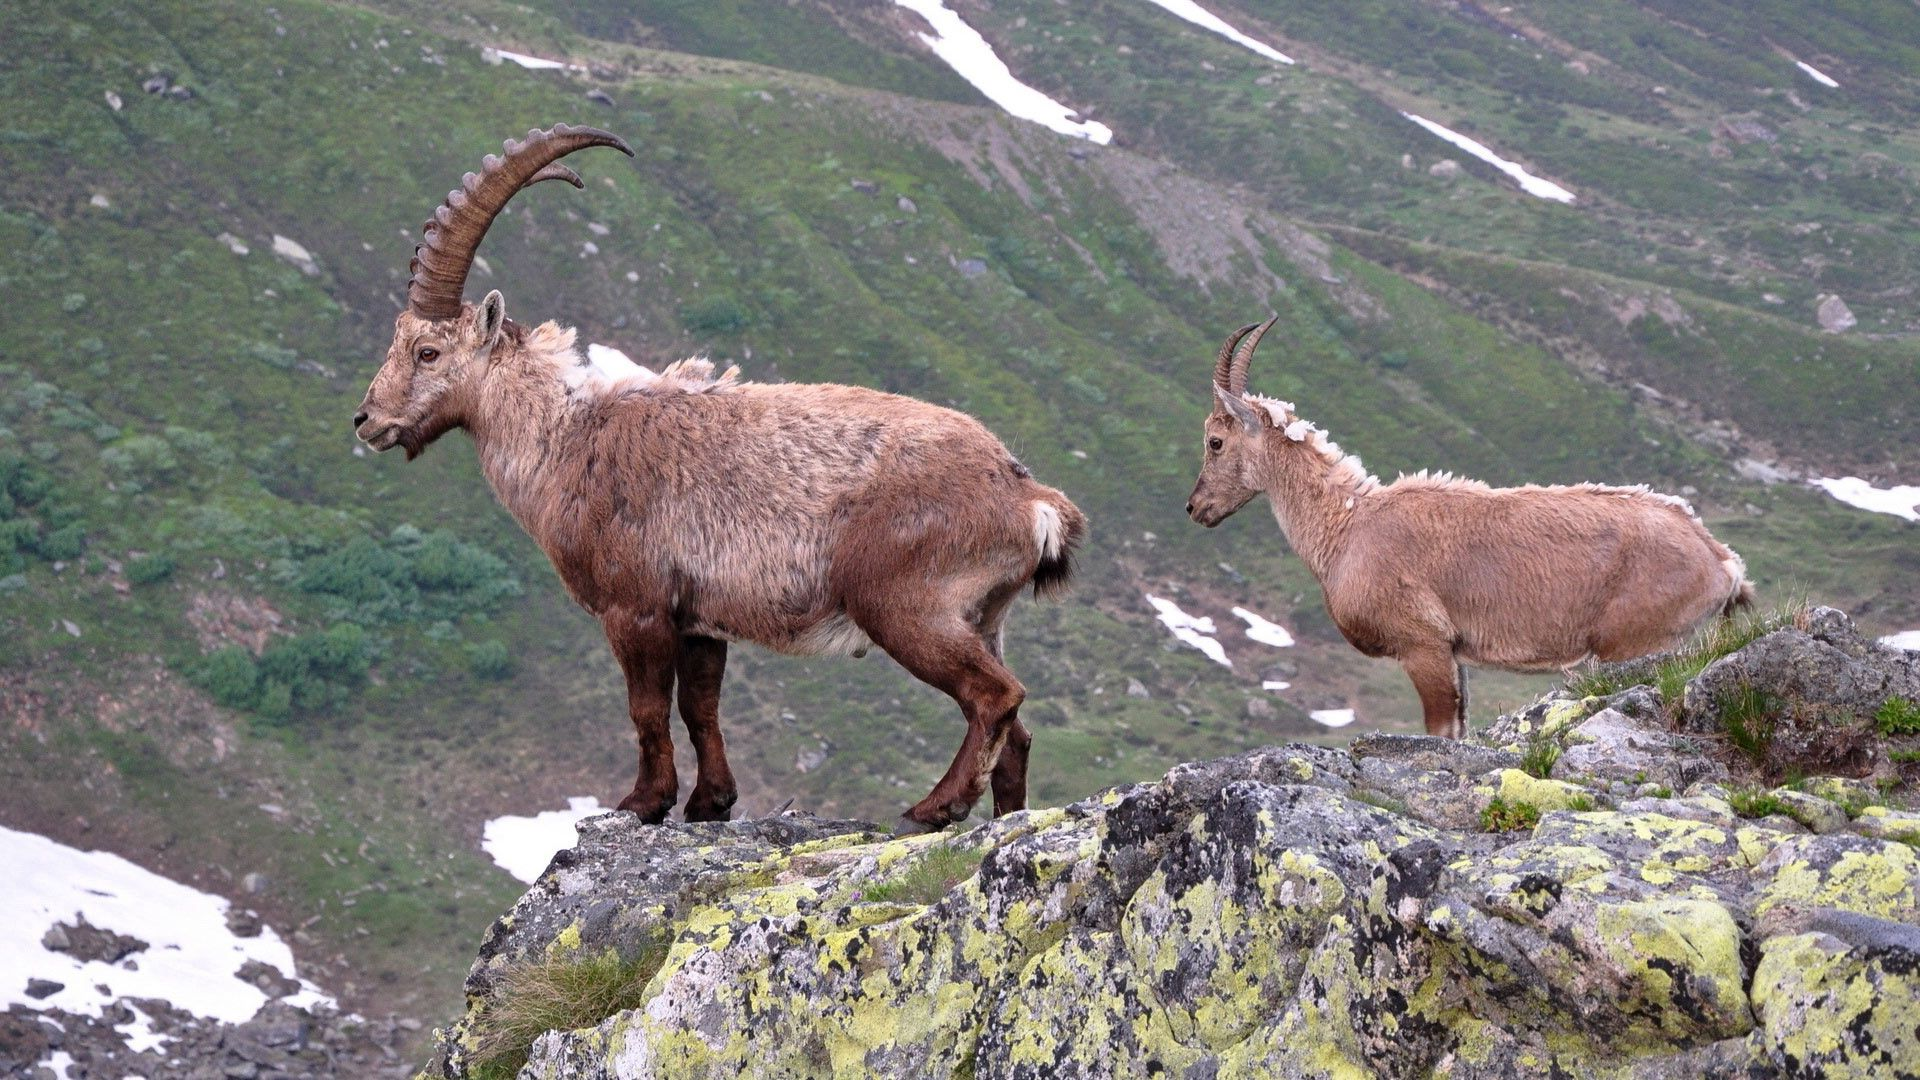 106299 download wallpaper Animals, Break, Precipice, Stones, Horns, Mountain Goats, Mountains screensavers and pictures for free